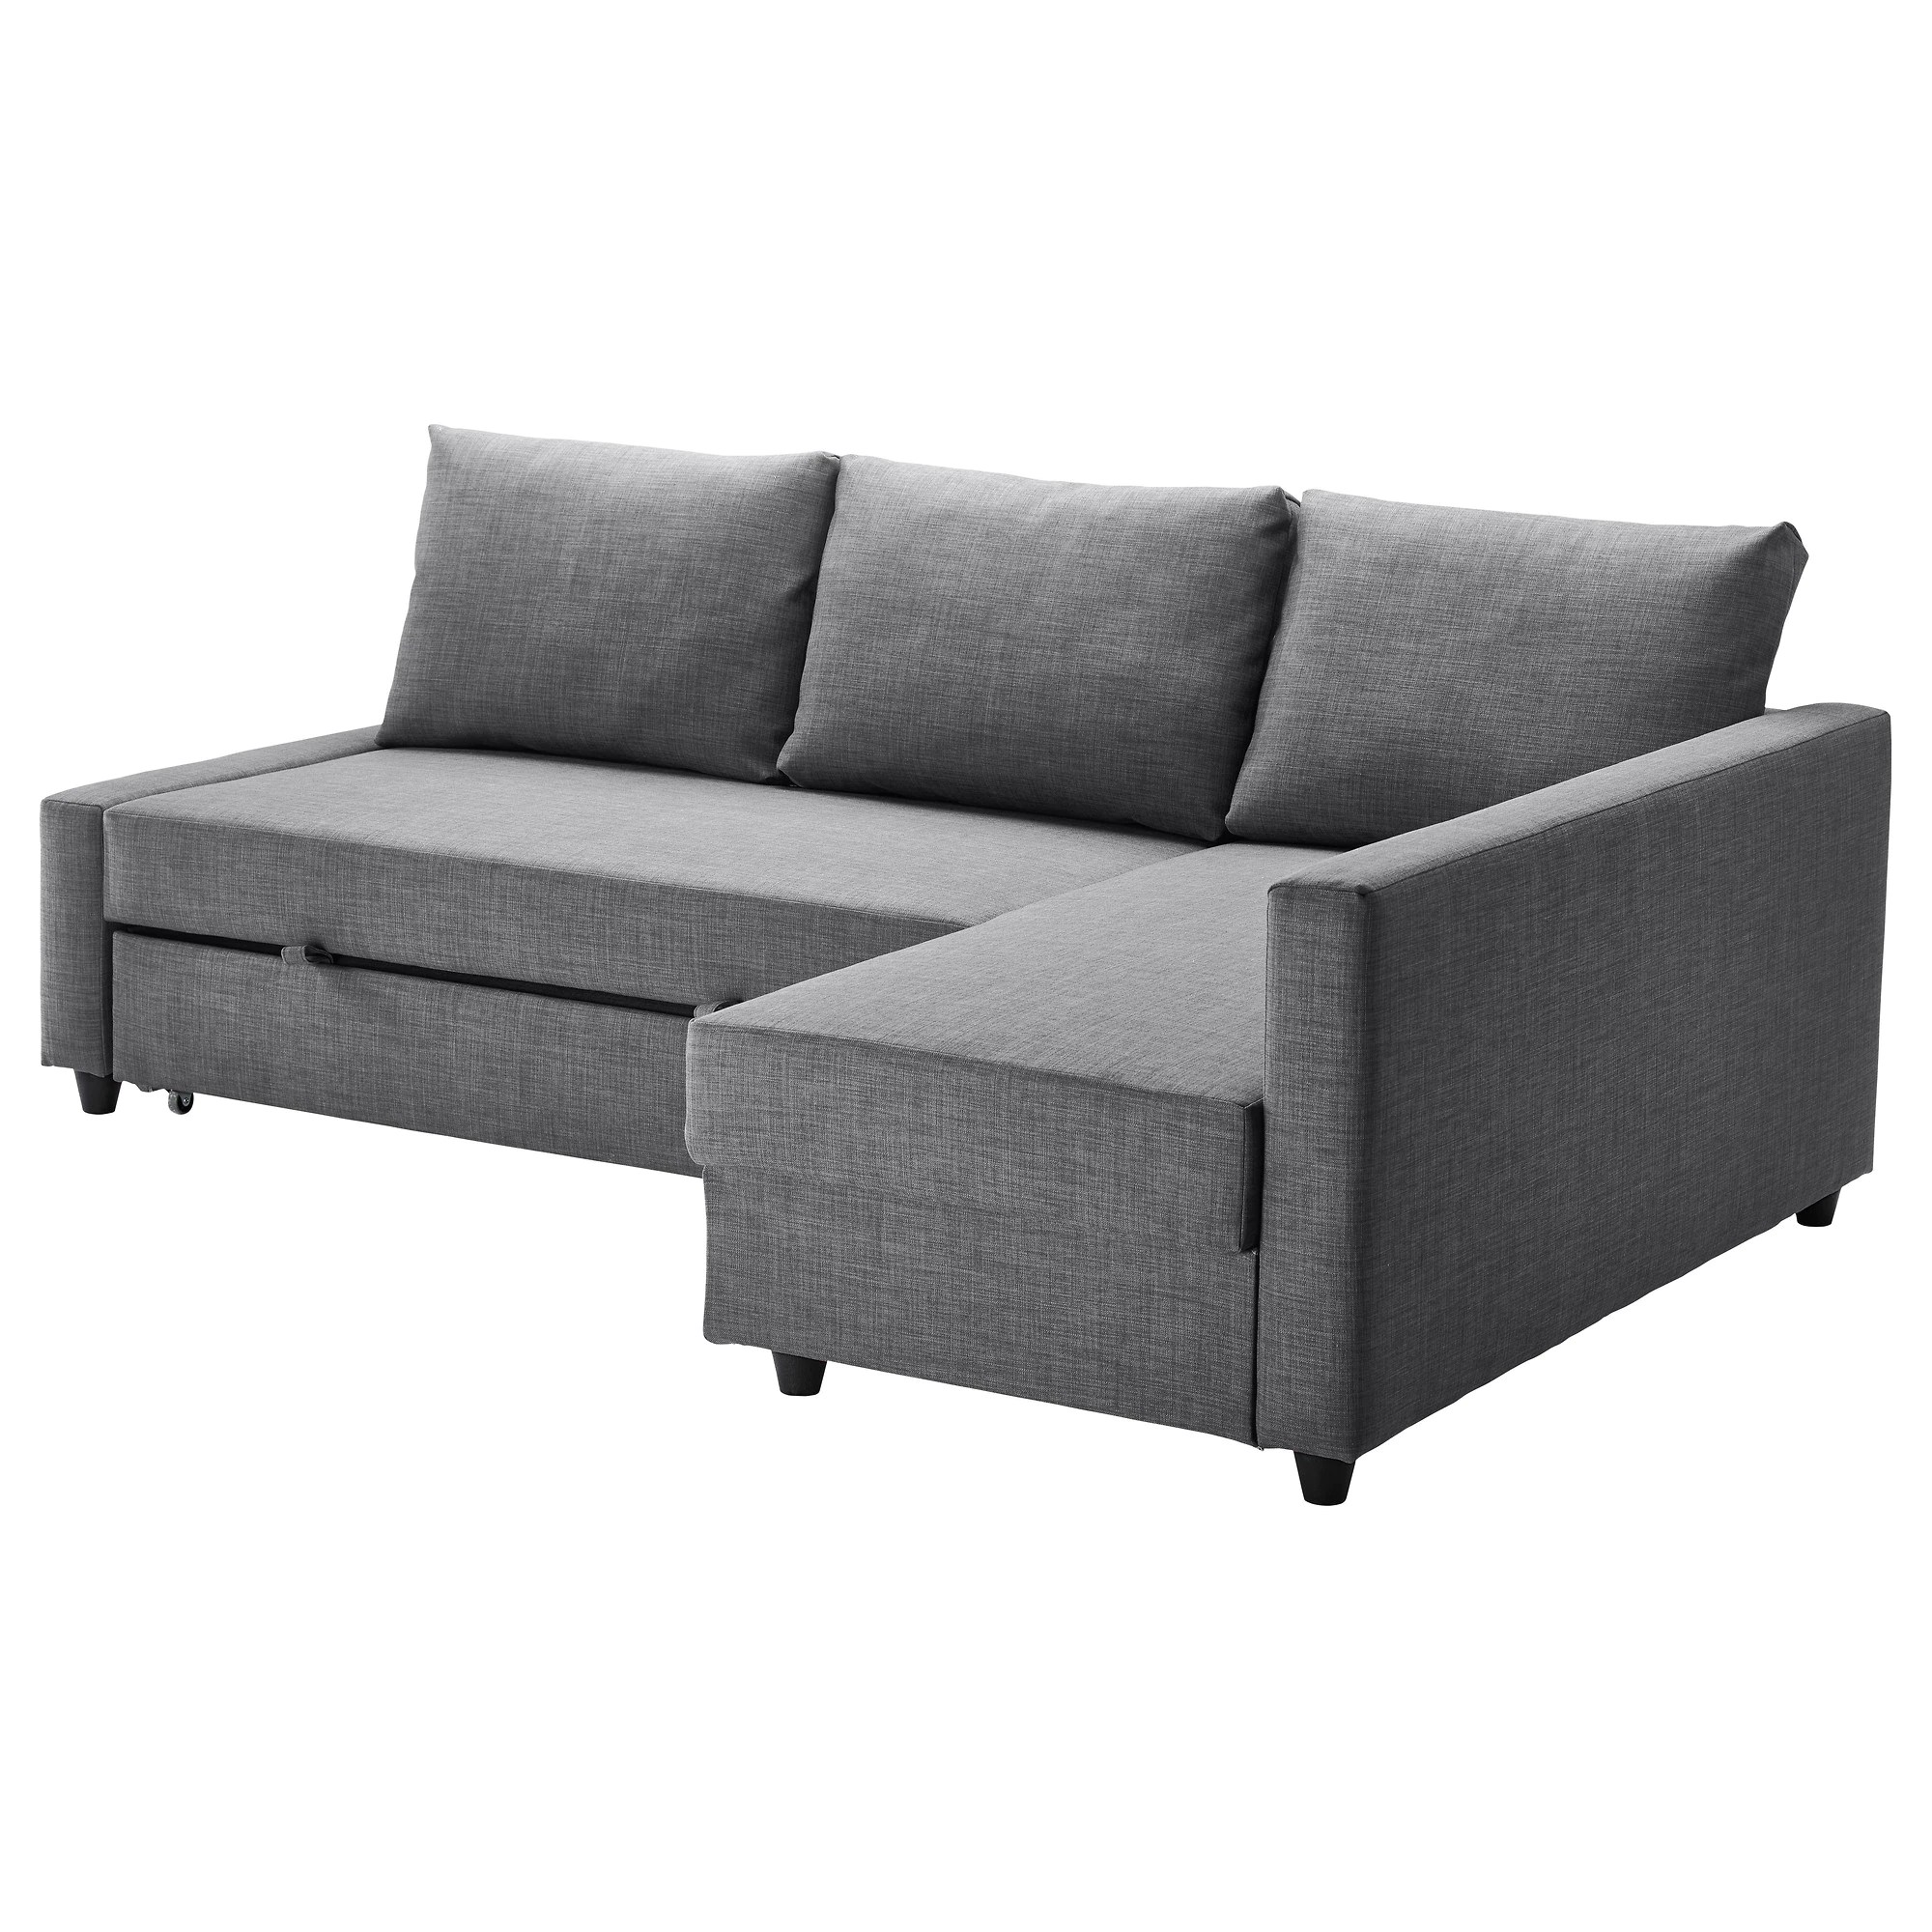 Sofa Bed For Sale Toronto Friheten Corner Sofa Bed With Storage Skiftebo Dark Gray